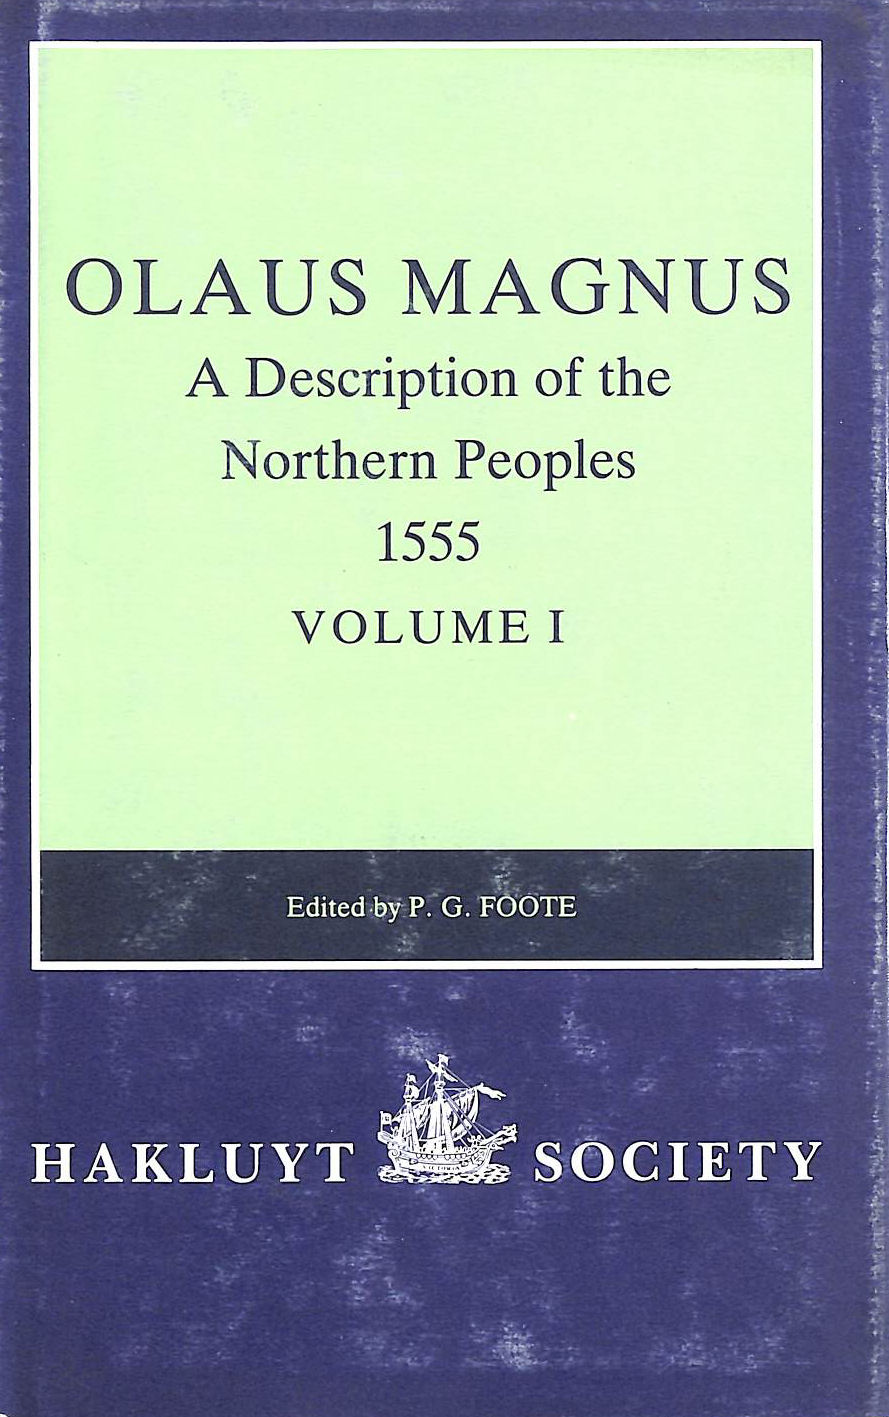 Image for Olaus Magnus, A Description of the Northern Peoples, 1555: Volume I: Second Series